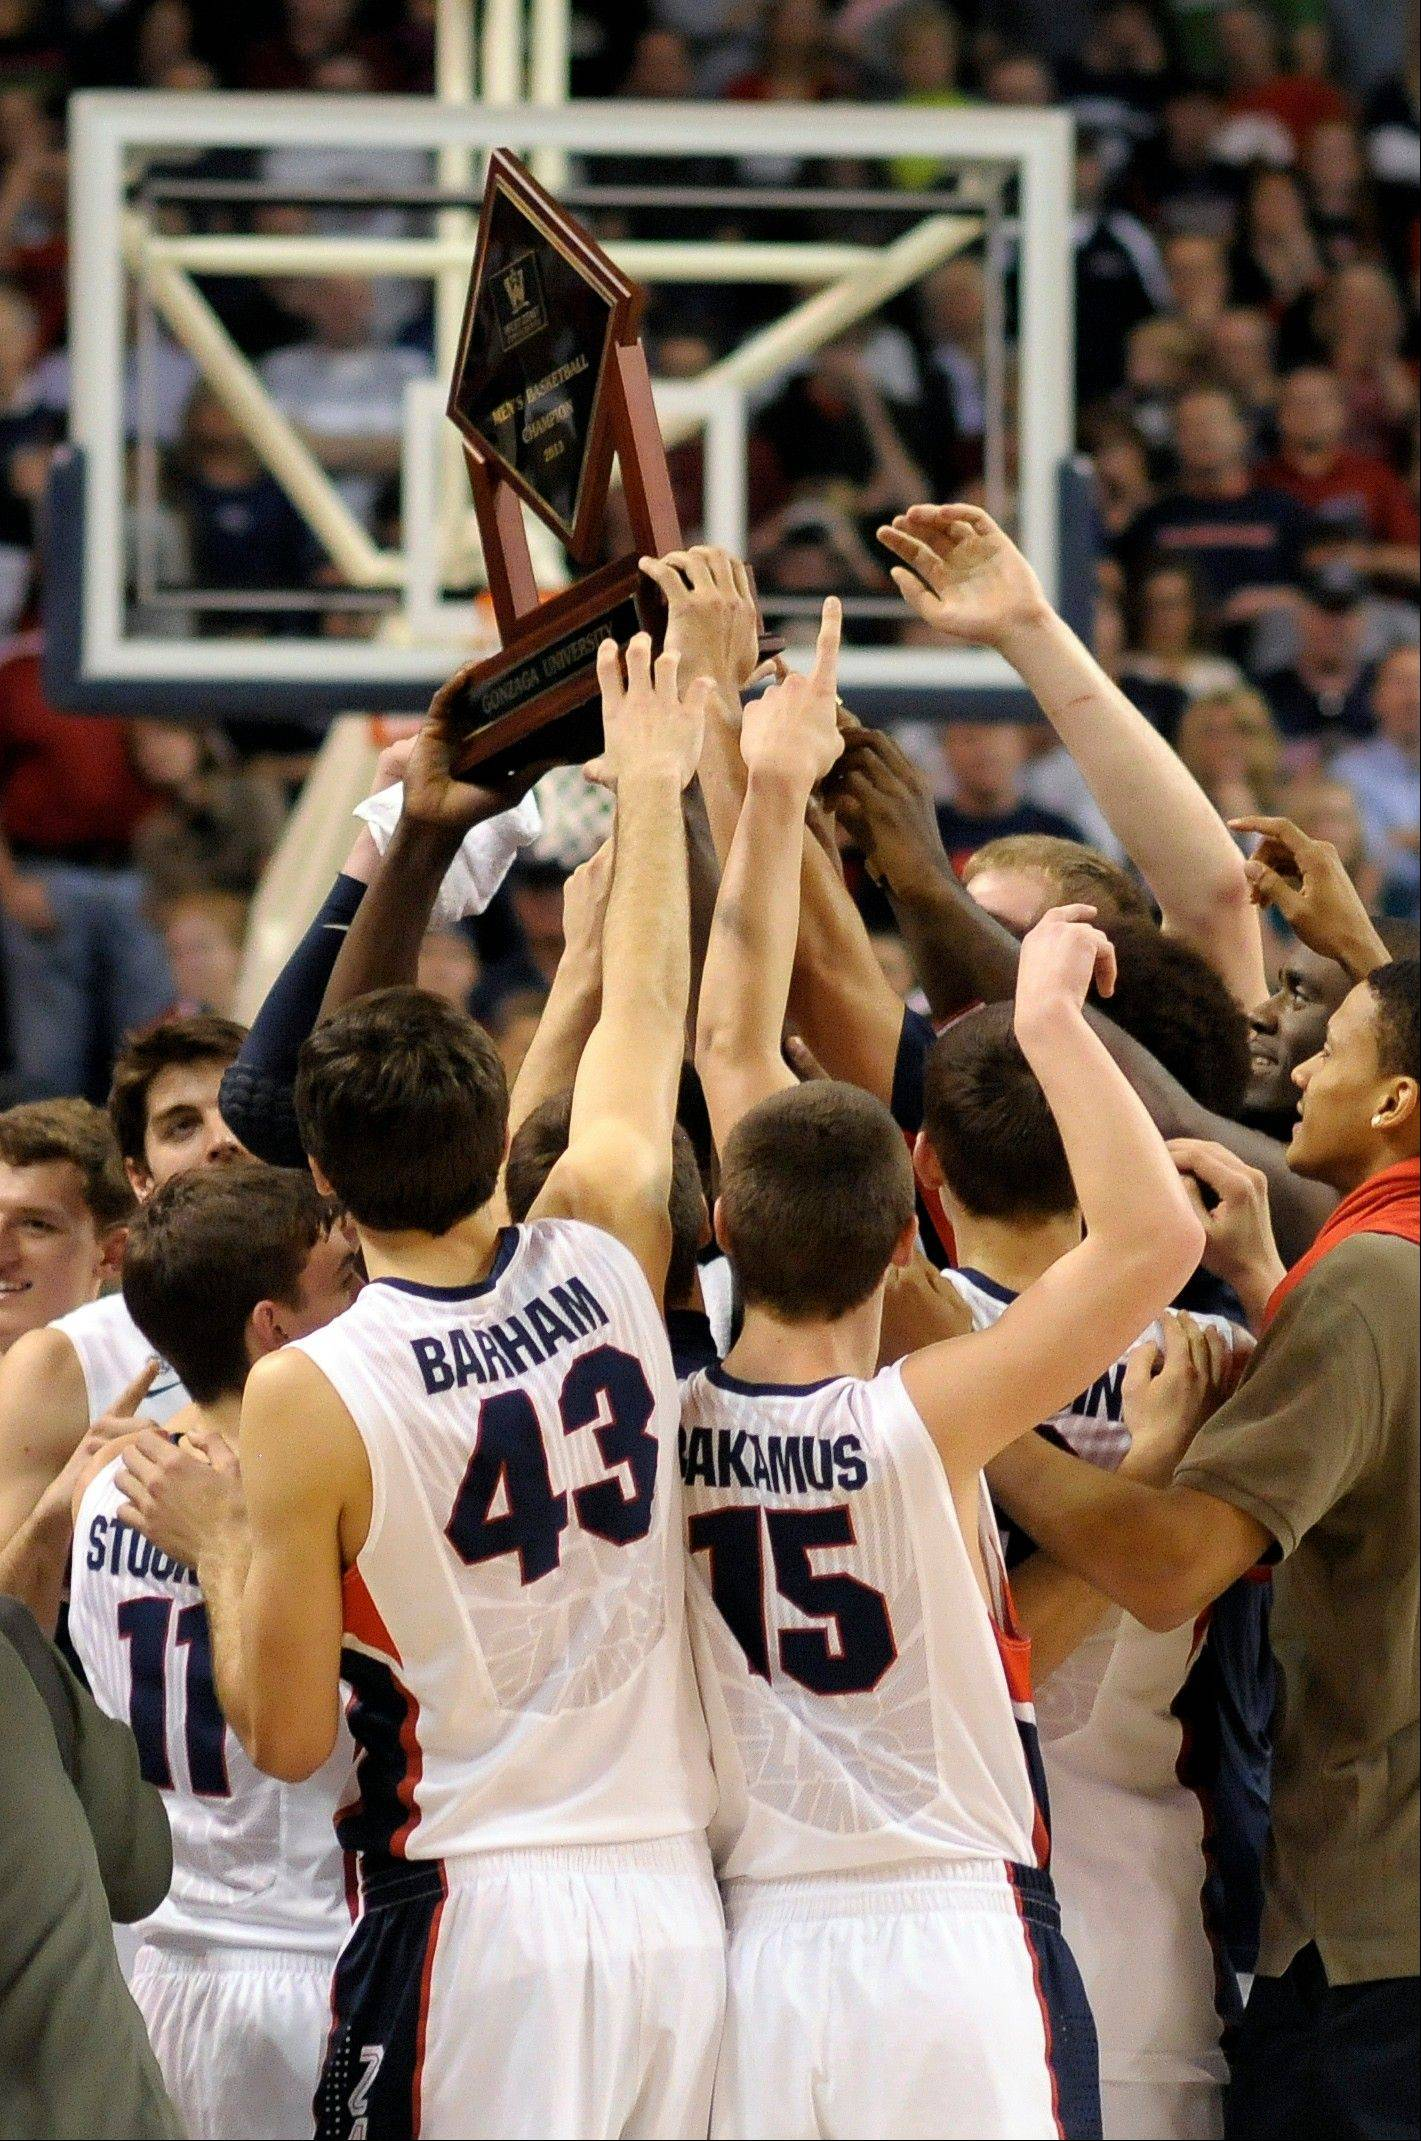 Gonzaga, who celebrated after winning the West Coast Conference Championship against Portland on March 2, earned a No. 1 seed in the NCAA men's basketball tournament.